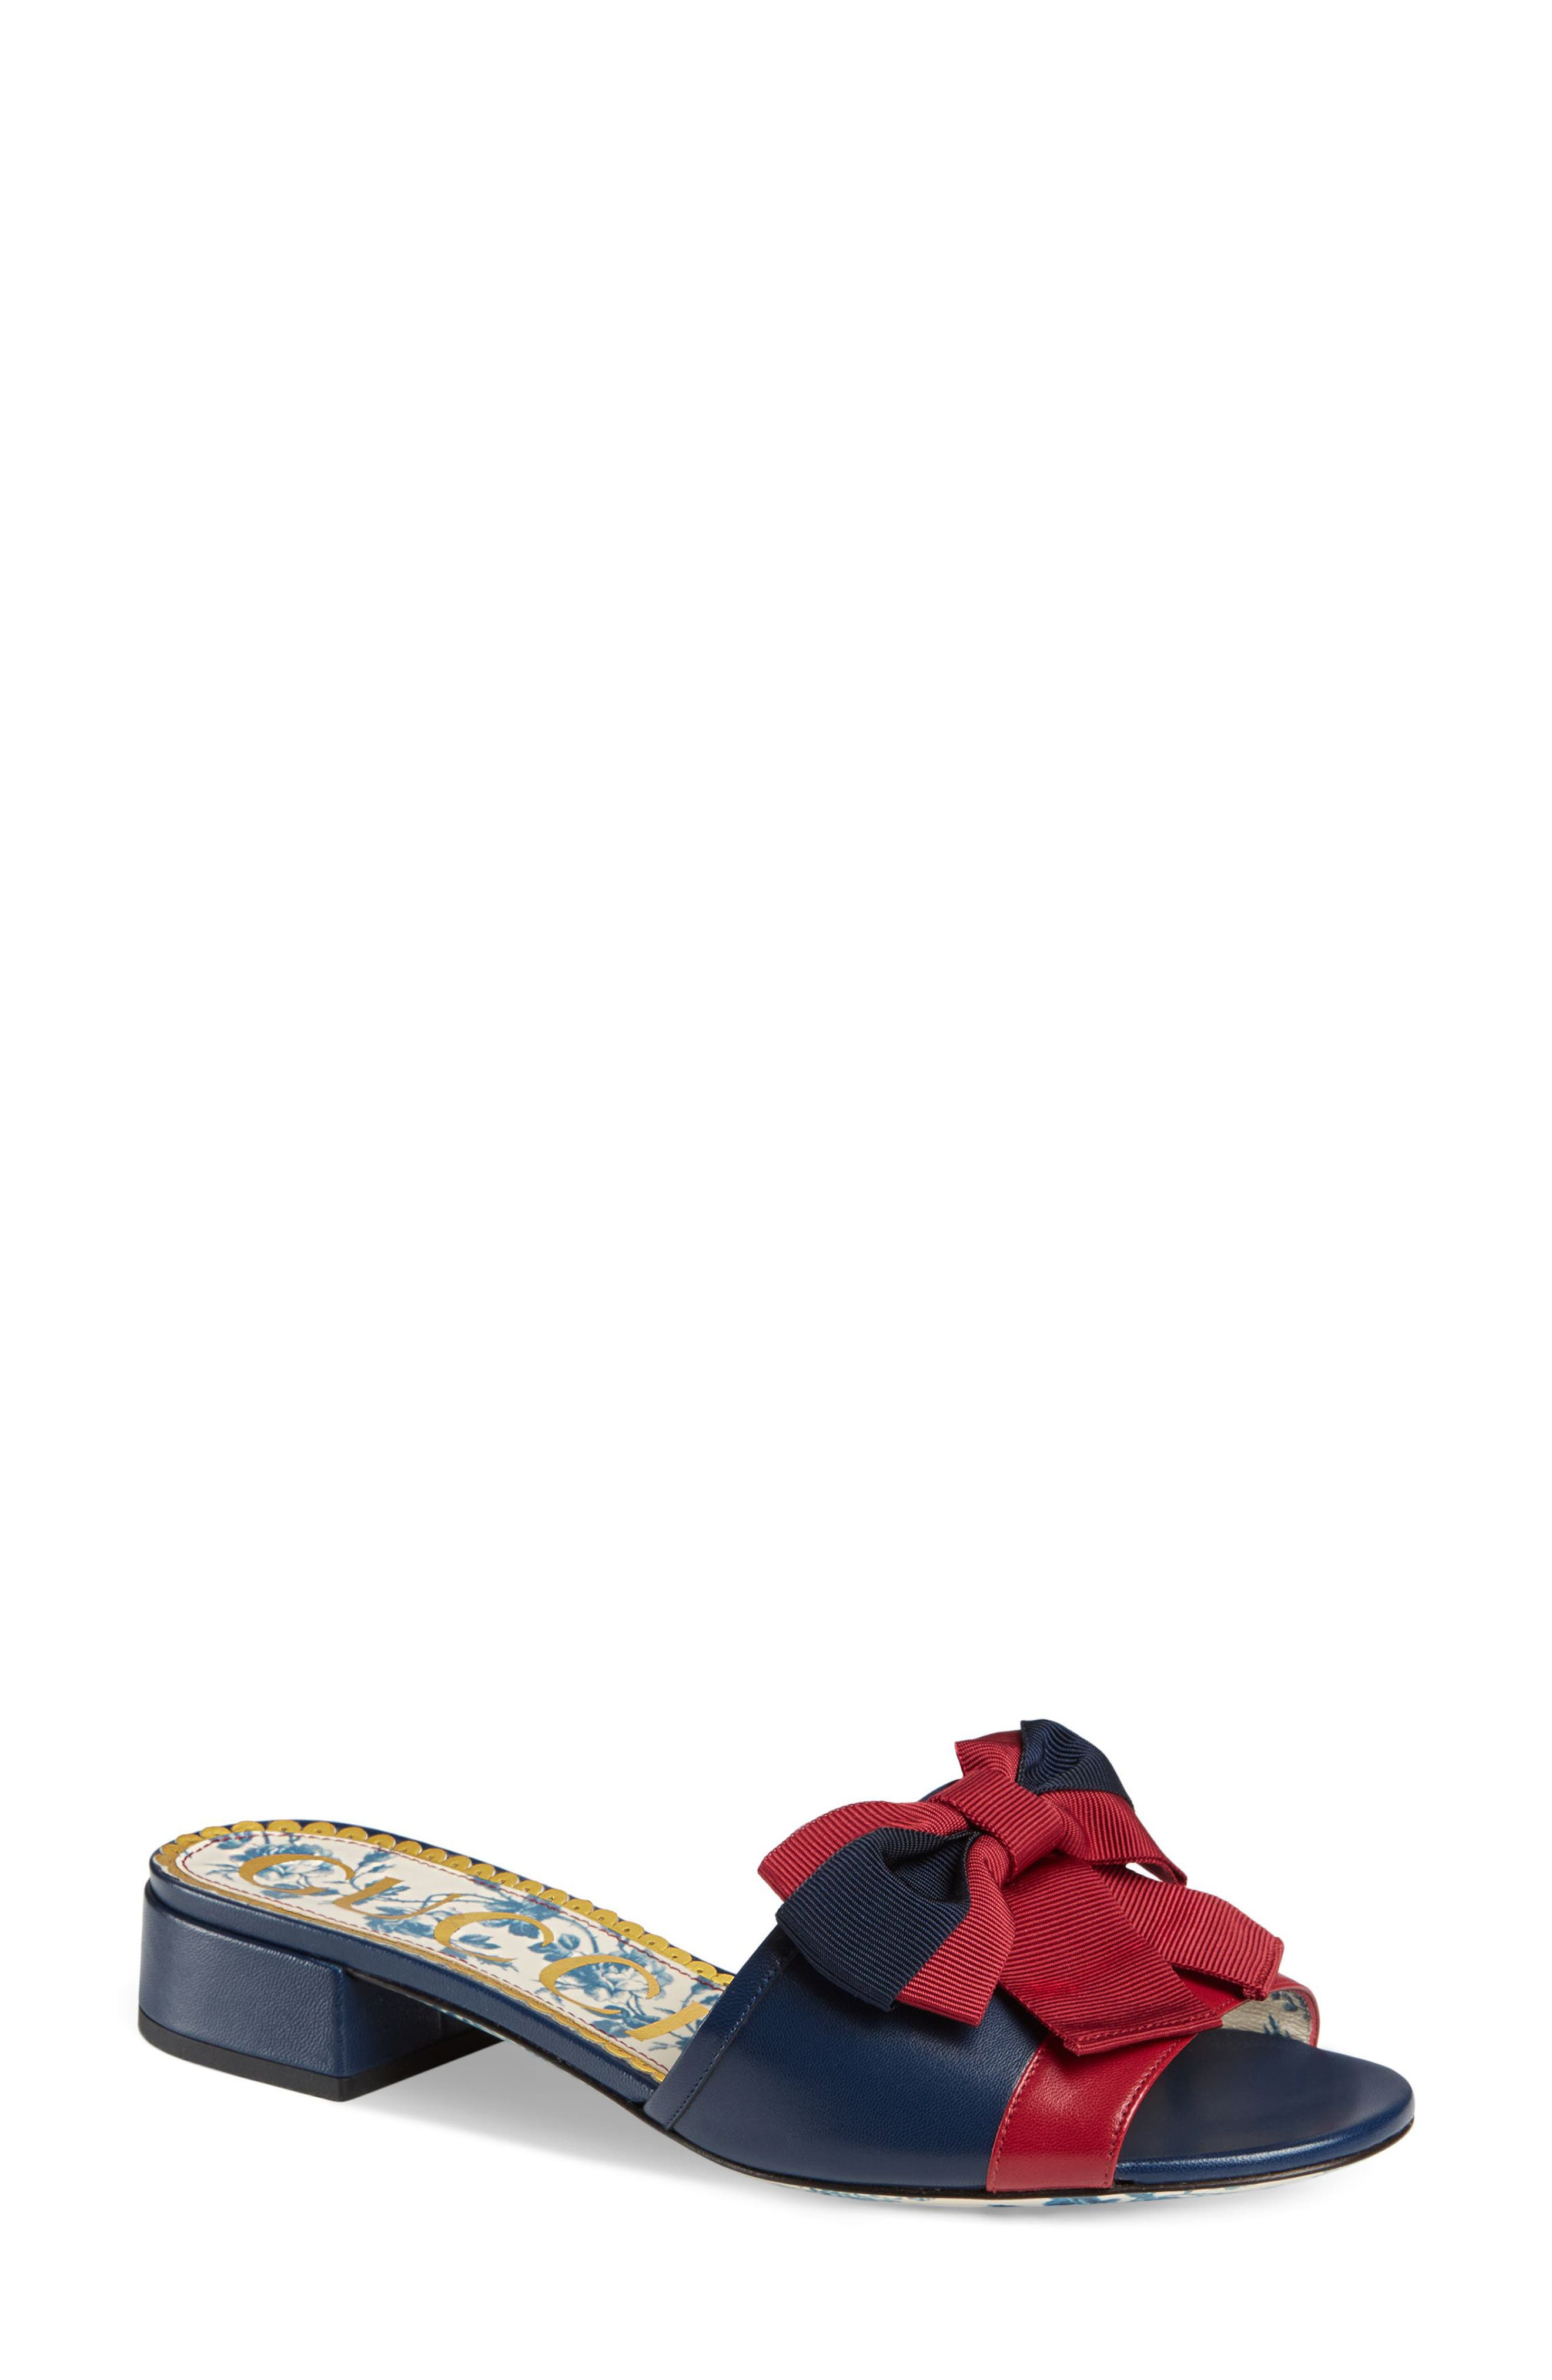 Sackville Bow Sandal,                             Main thumbnail 1, color,                             BLUE/ RED